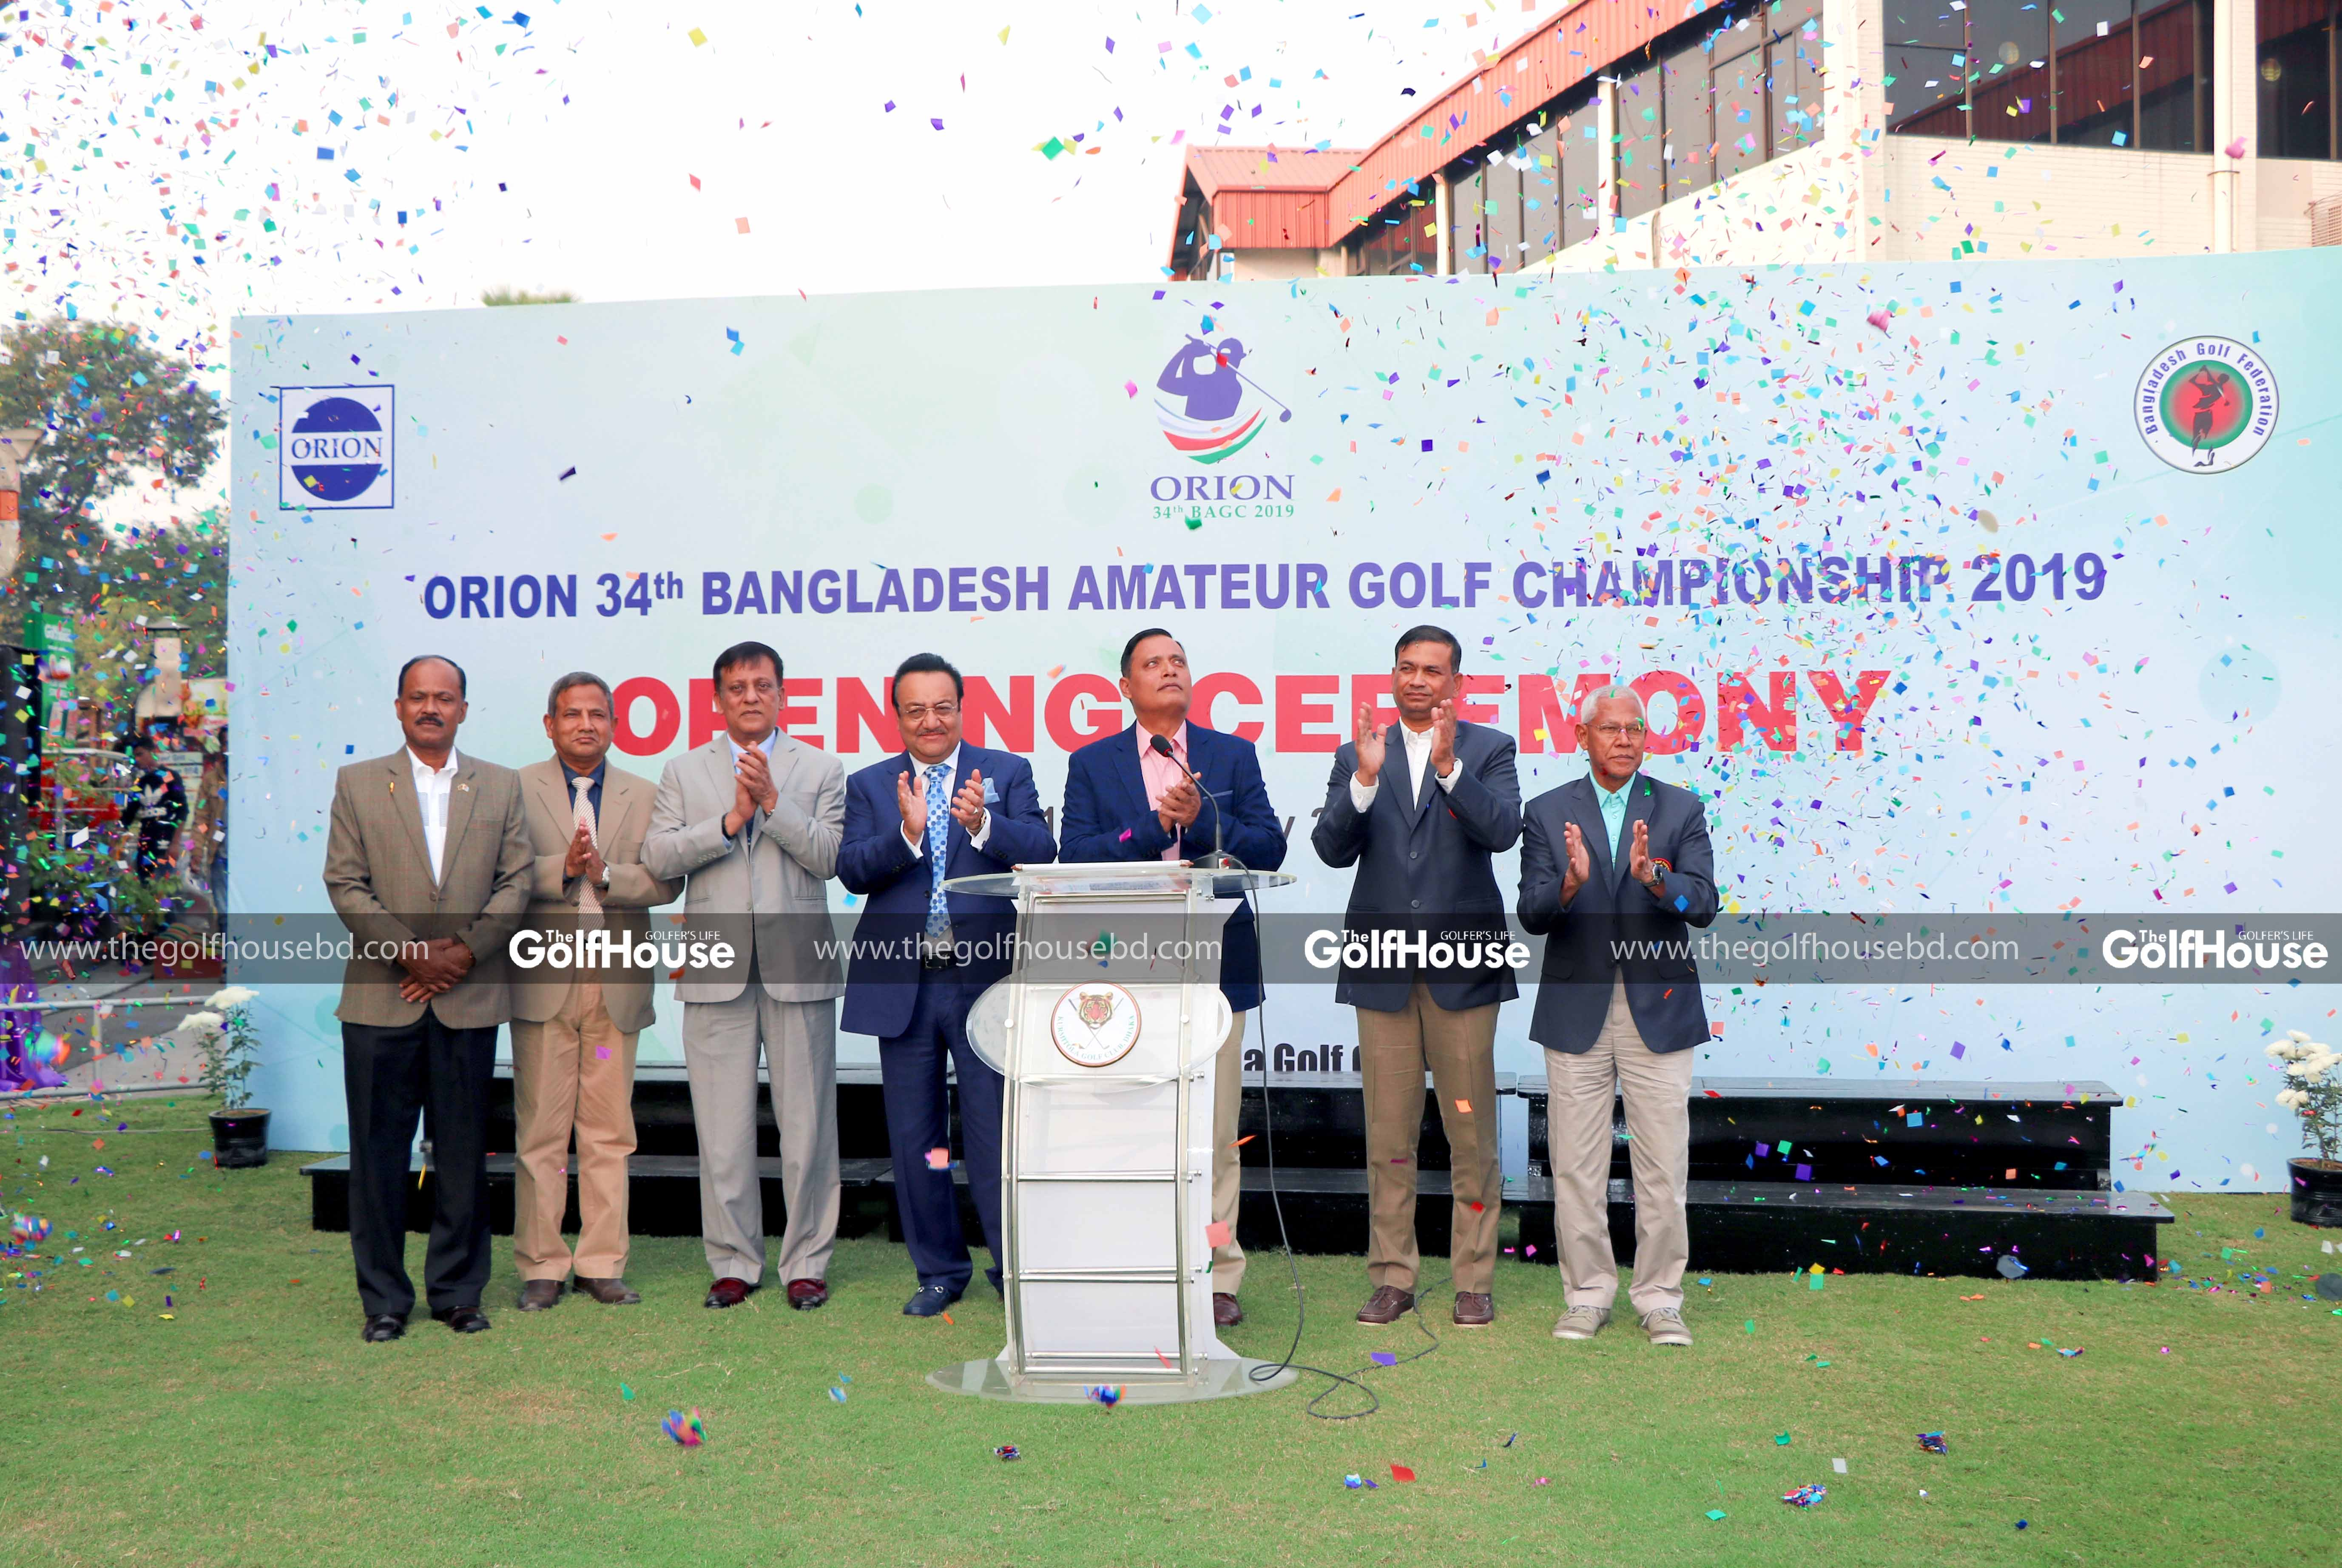 This is the premier amateur international golf tournament of the country. Orion Group sponsored the prestigious tournament for the third time.